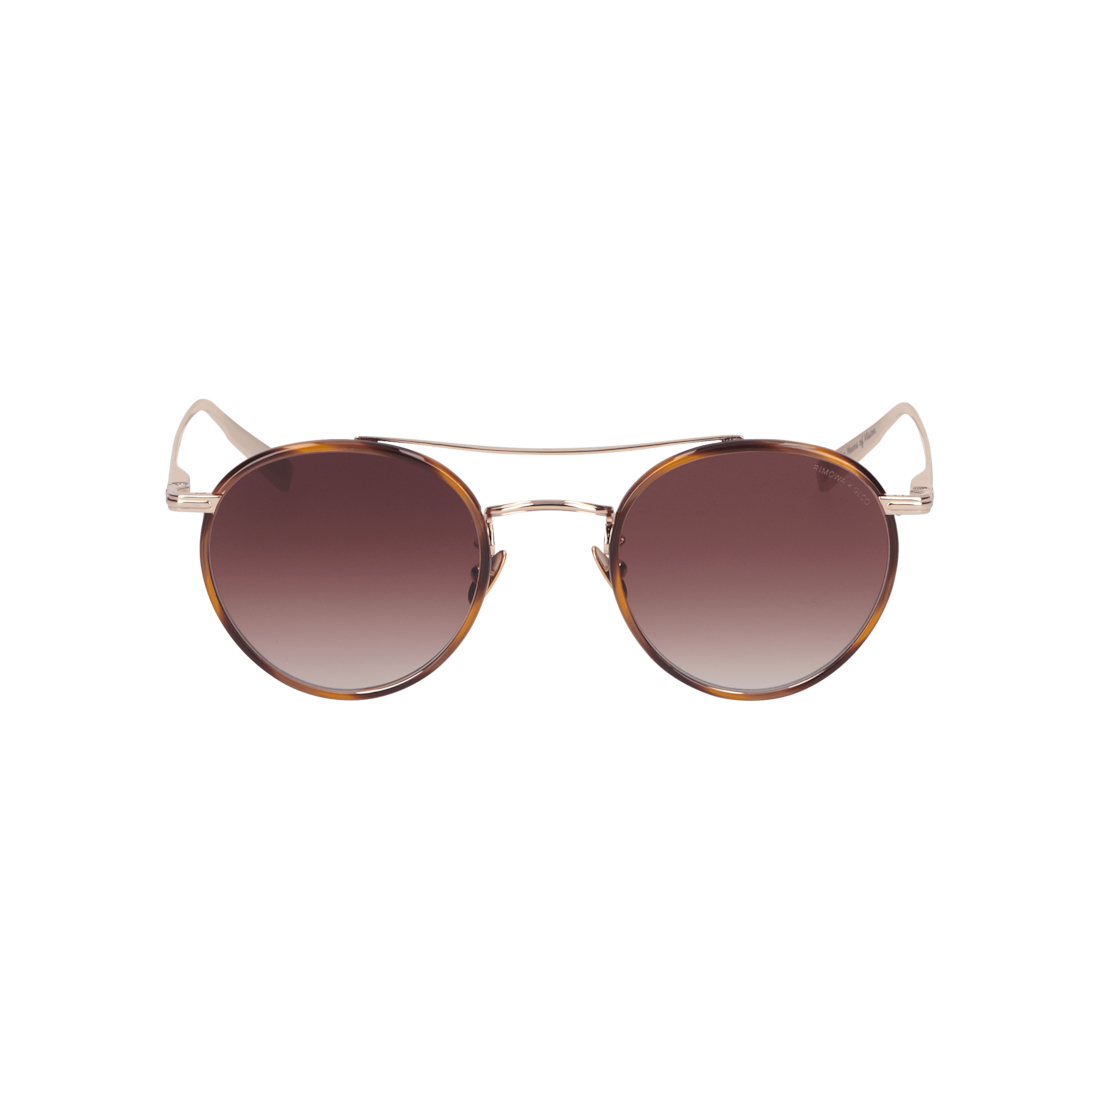 Gold & Brown Sunglasses in Metal and Acetate